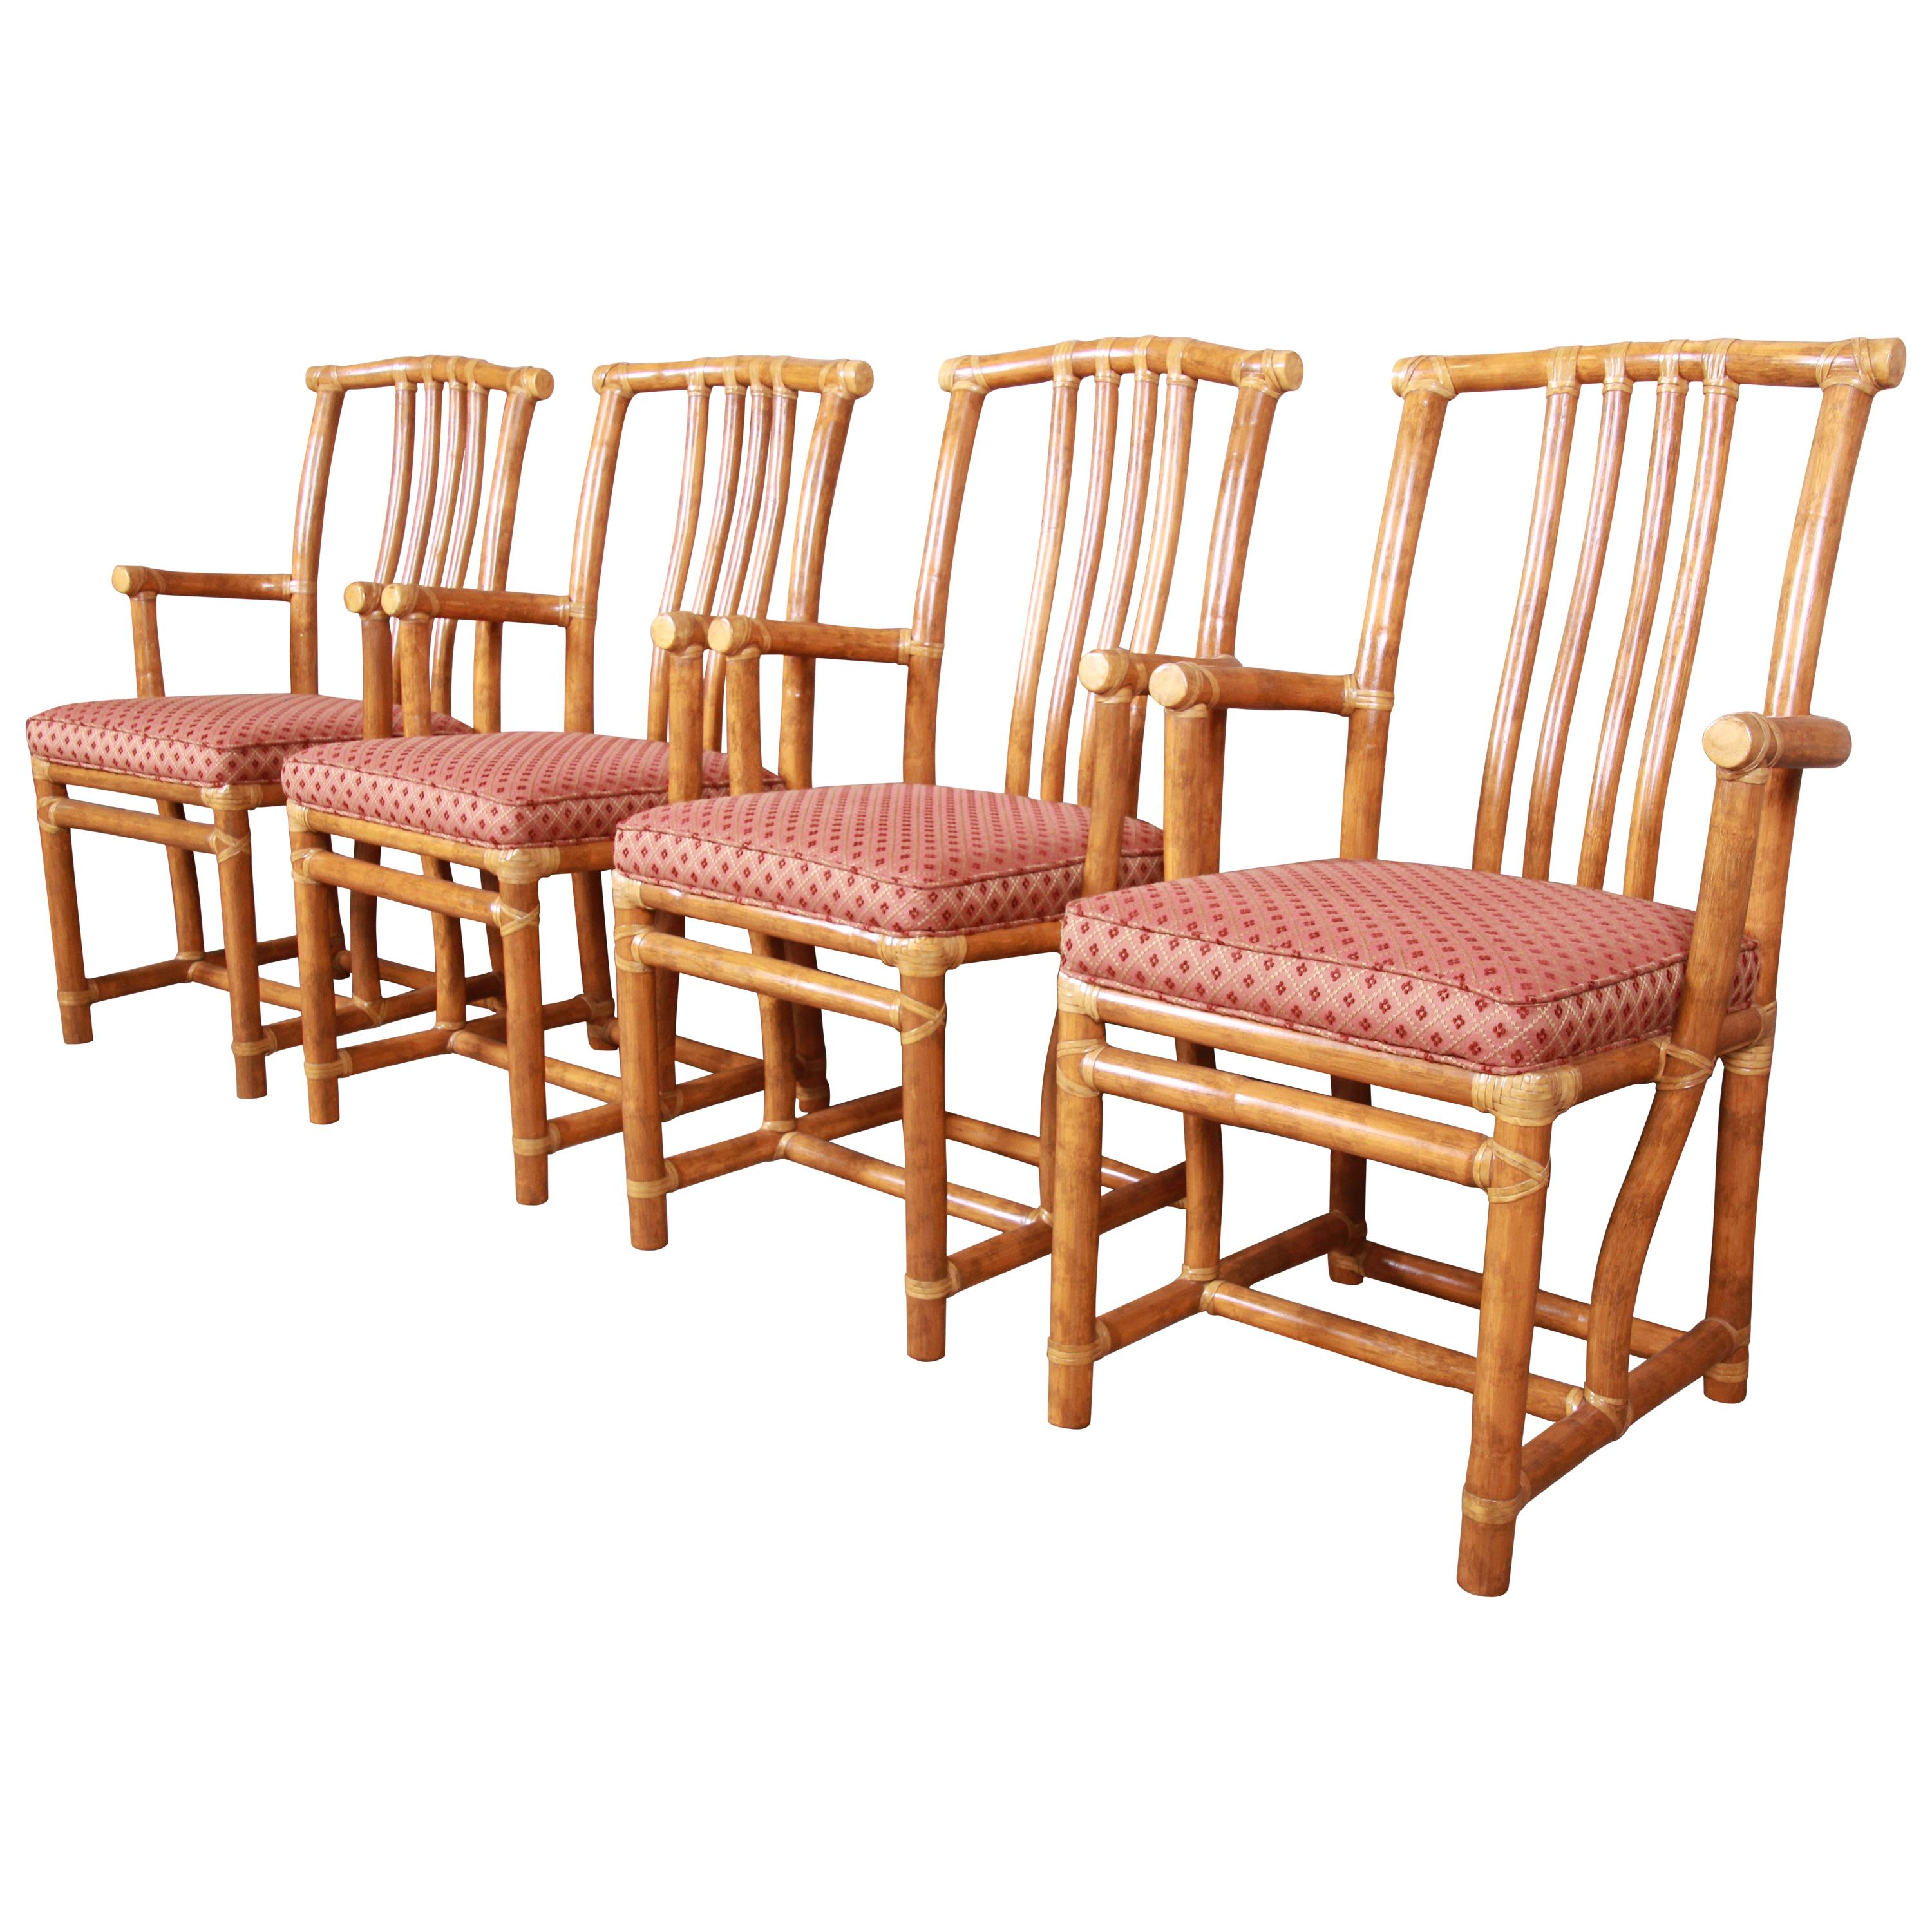 McGuire Hollywood Regency Organic Modern Bamboo Rattan Armchairs, Set of Four